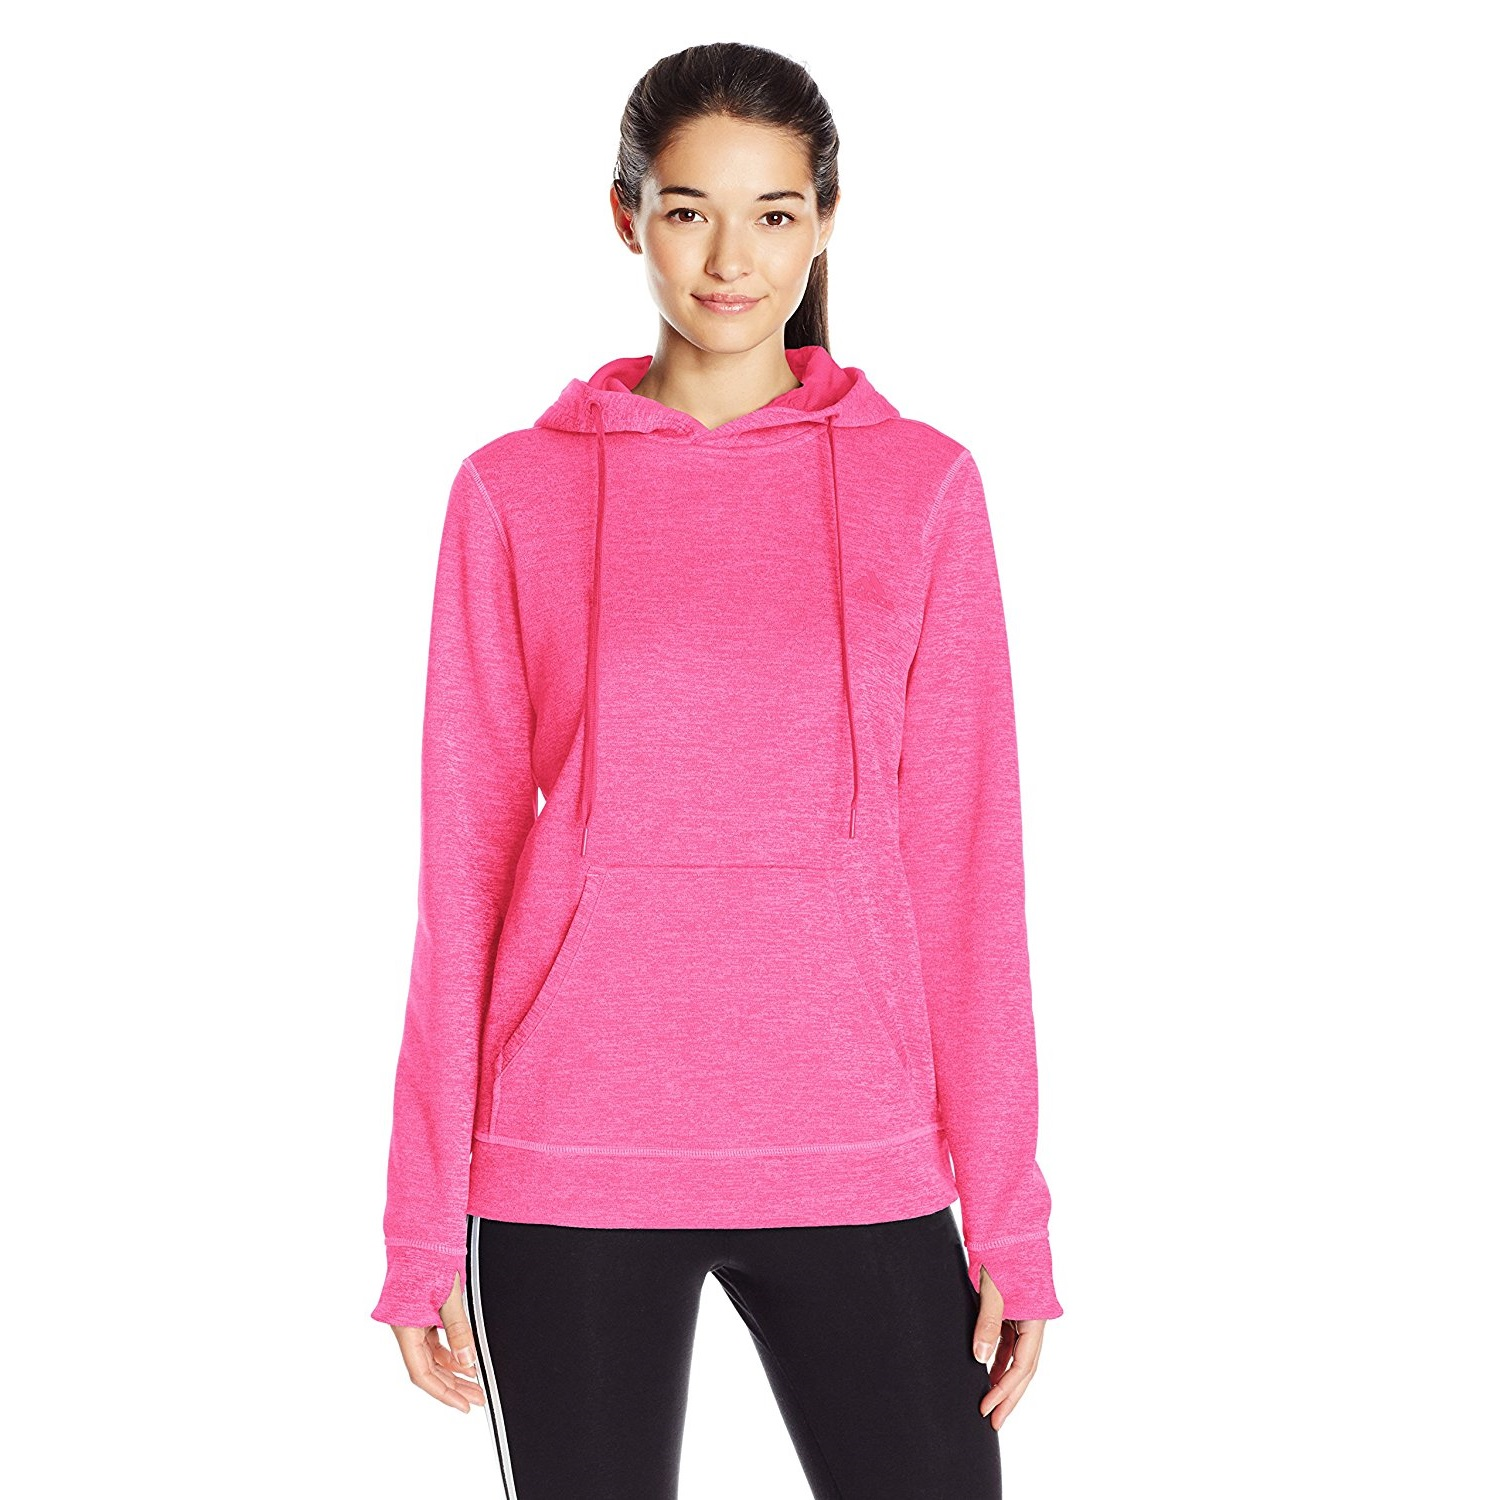 Adidas Women's Pullover Hoodie